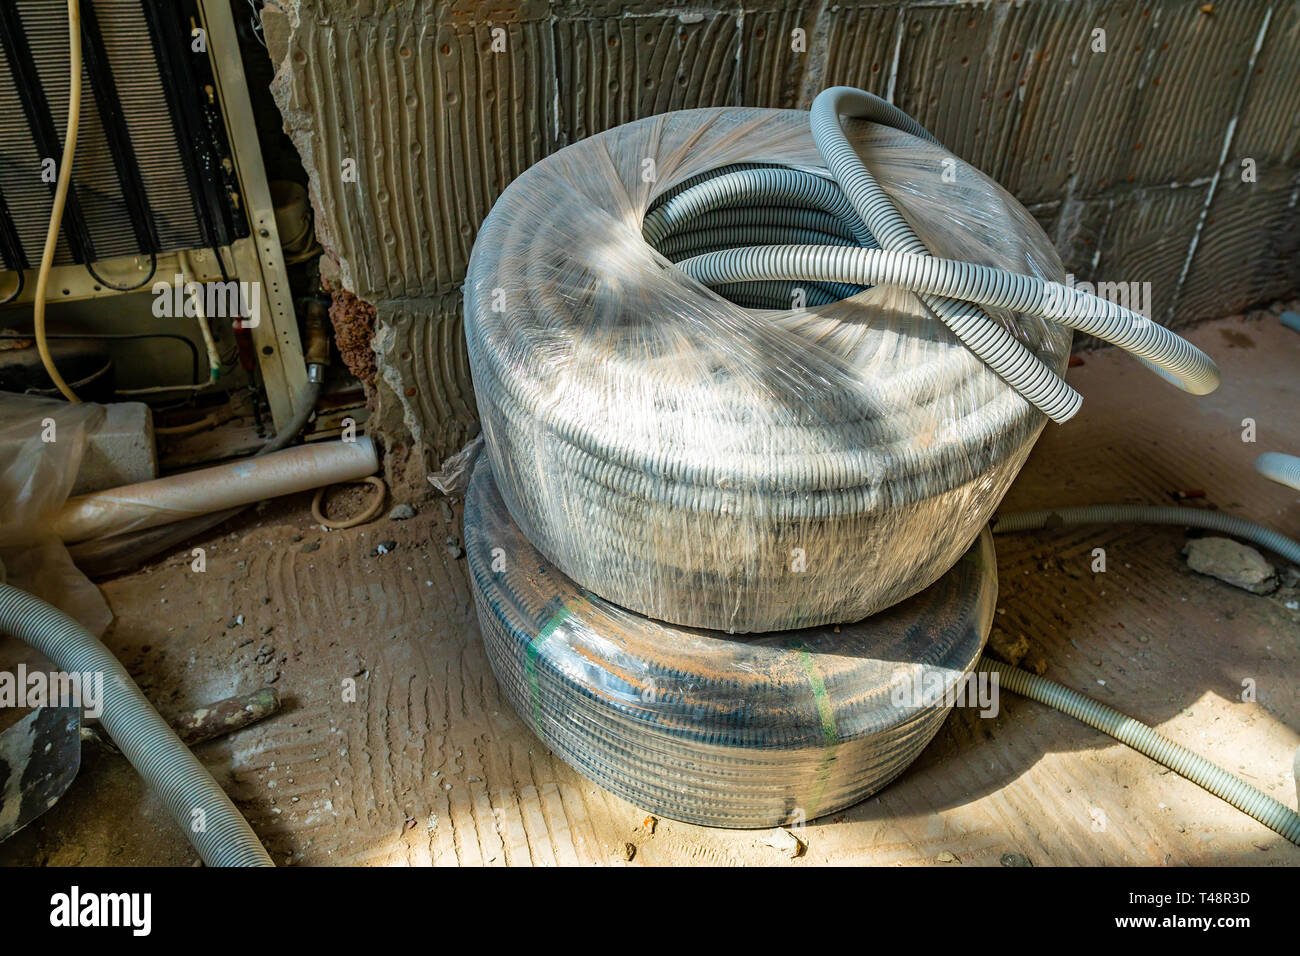 Light Grey Colored Electrical Power PVC Pipe Hose Under Construction Staggered on Floor Packed and Covered in a Plastic Bag - Stock Image